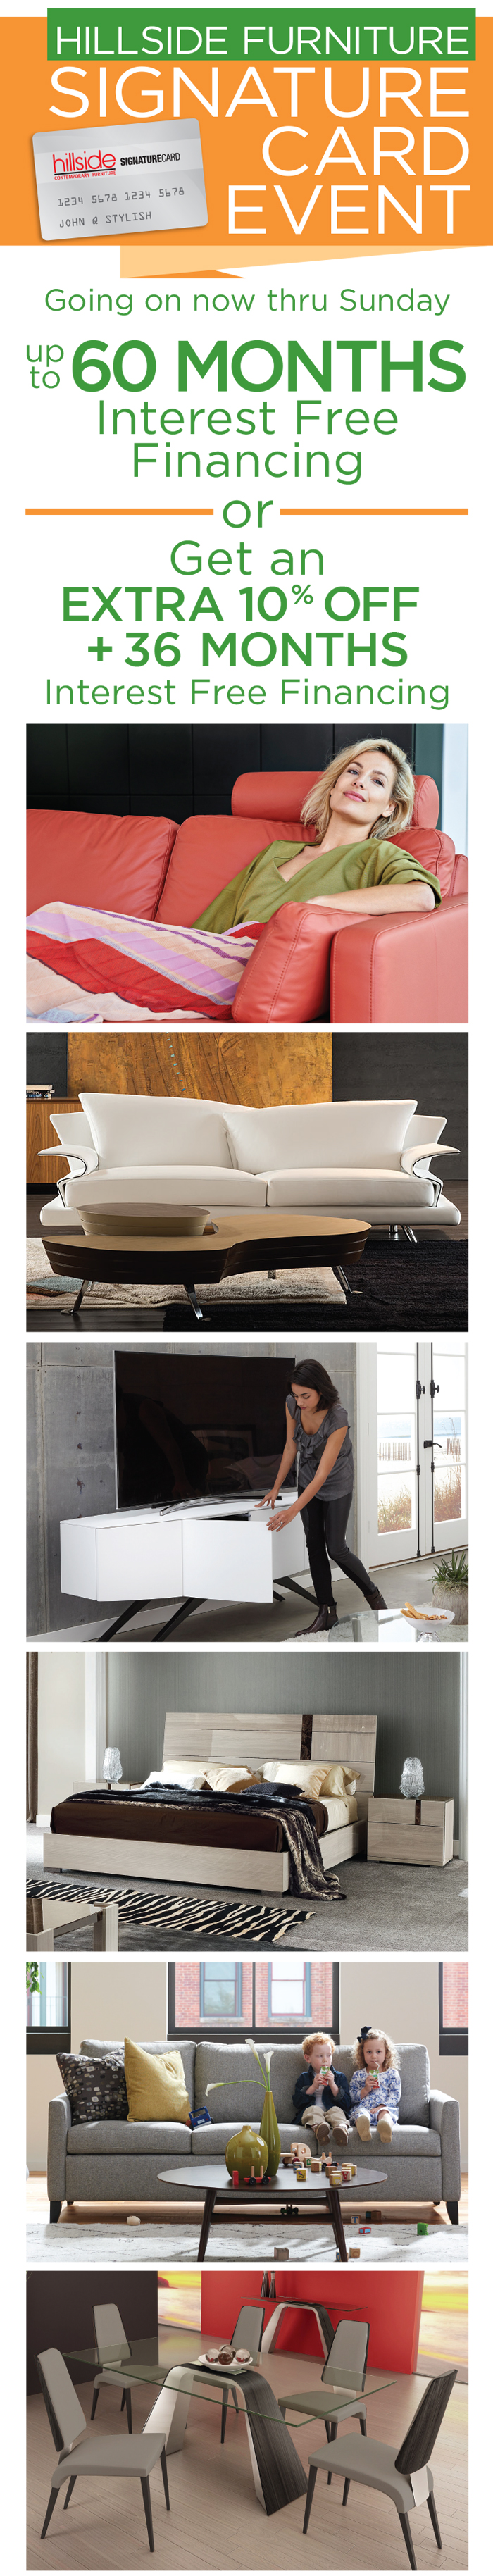 hillside contemporary furniture. Current Sales And Events At Hillside Furniture In Bloomfield Hills. Find The Lowest Prices Best Offers On Contemporary Modern Furniture. U